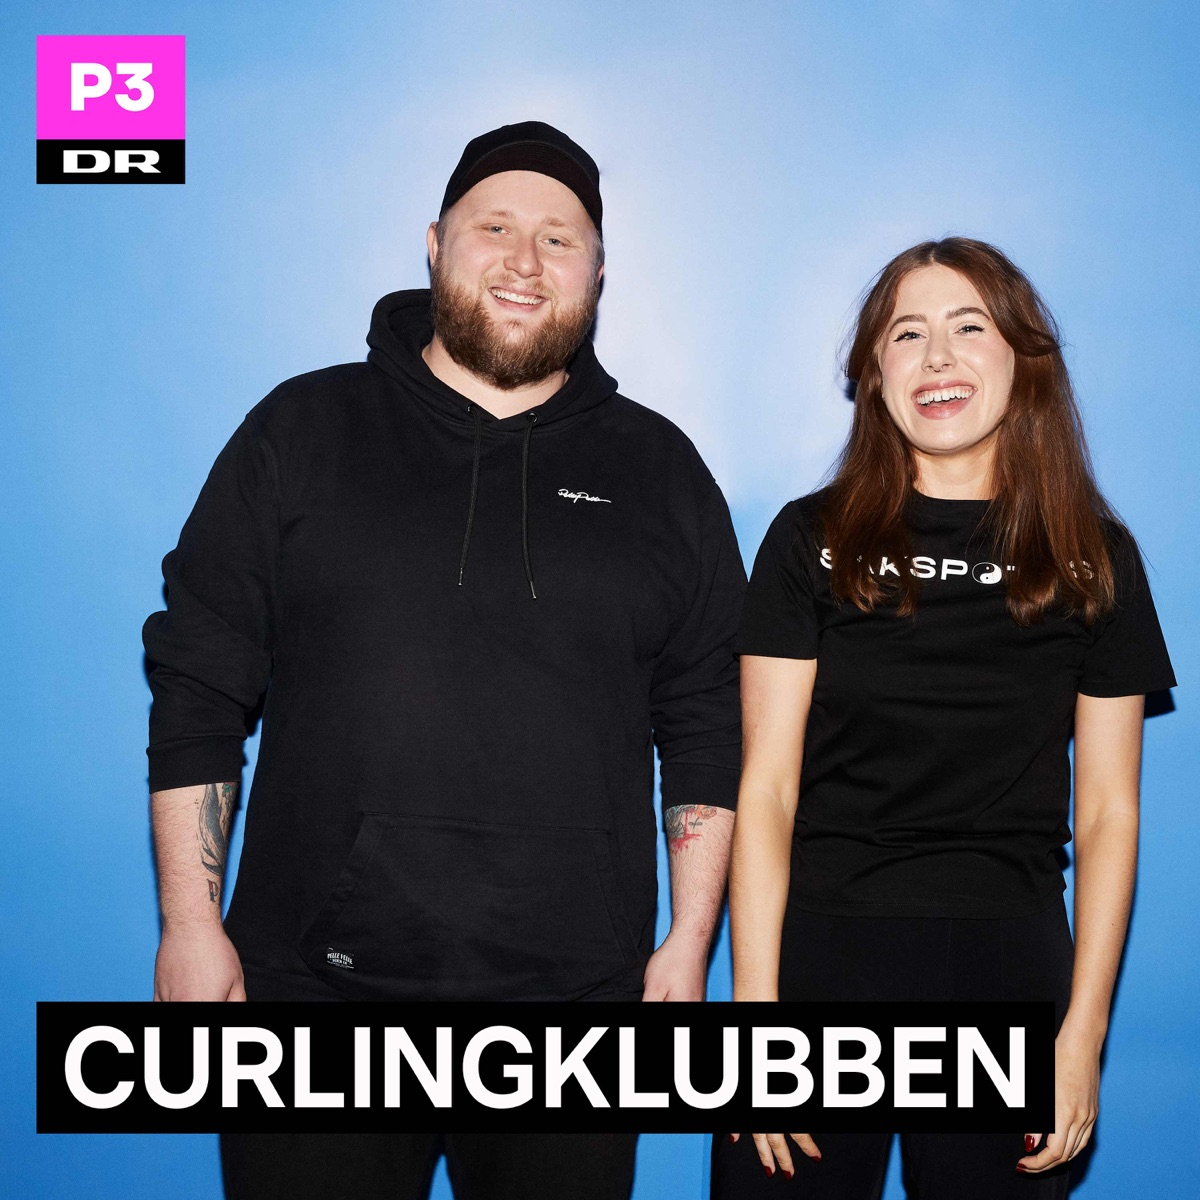 Curlingklubben: Far på Facebook, fortsat - 11. jun 2020